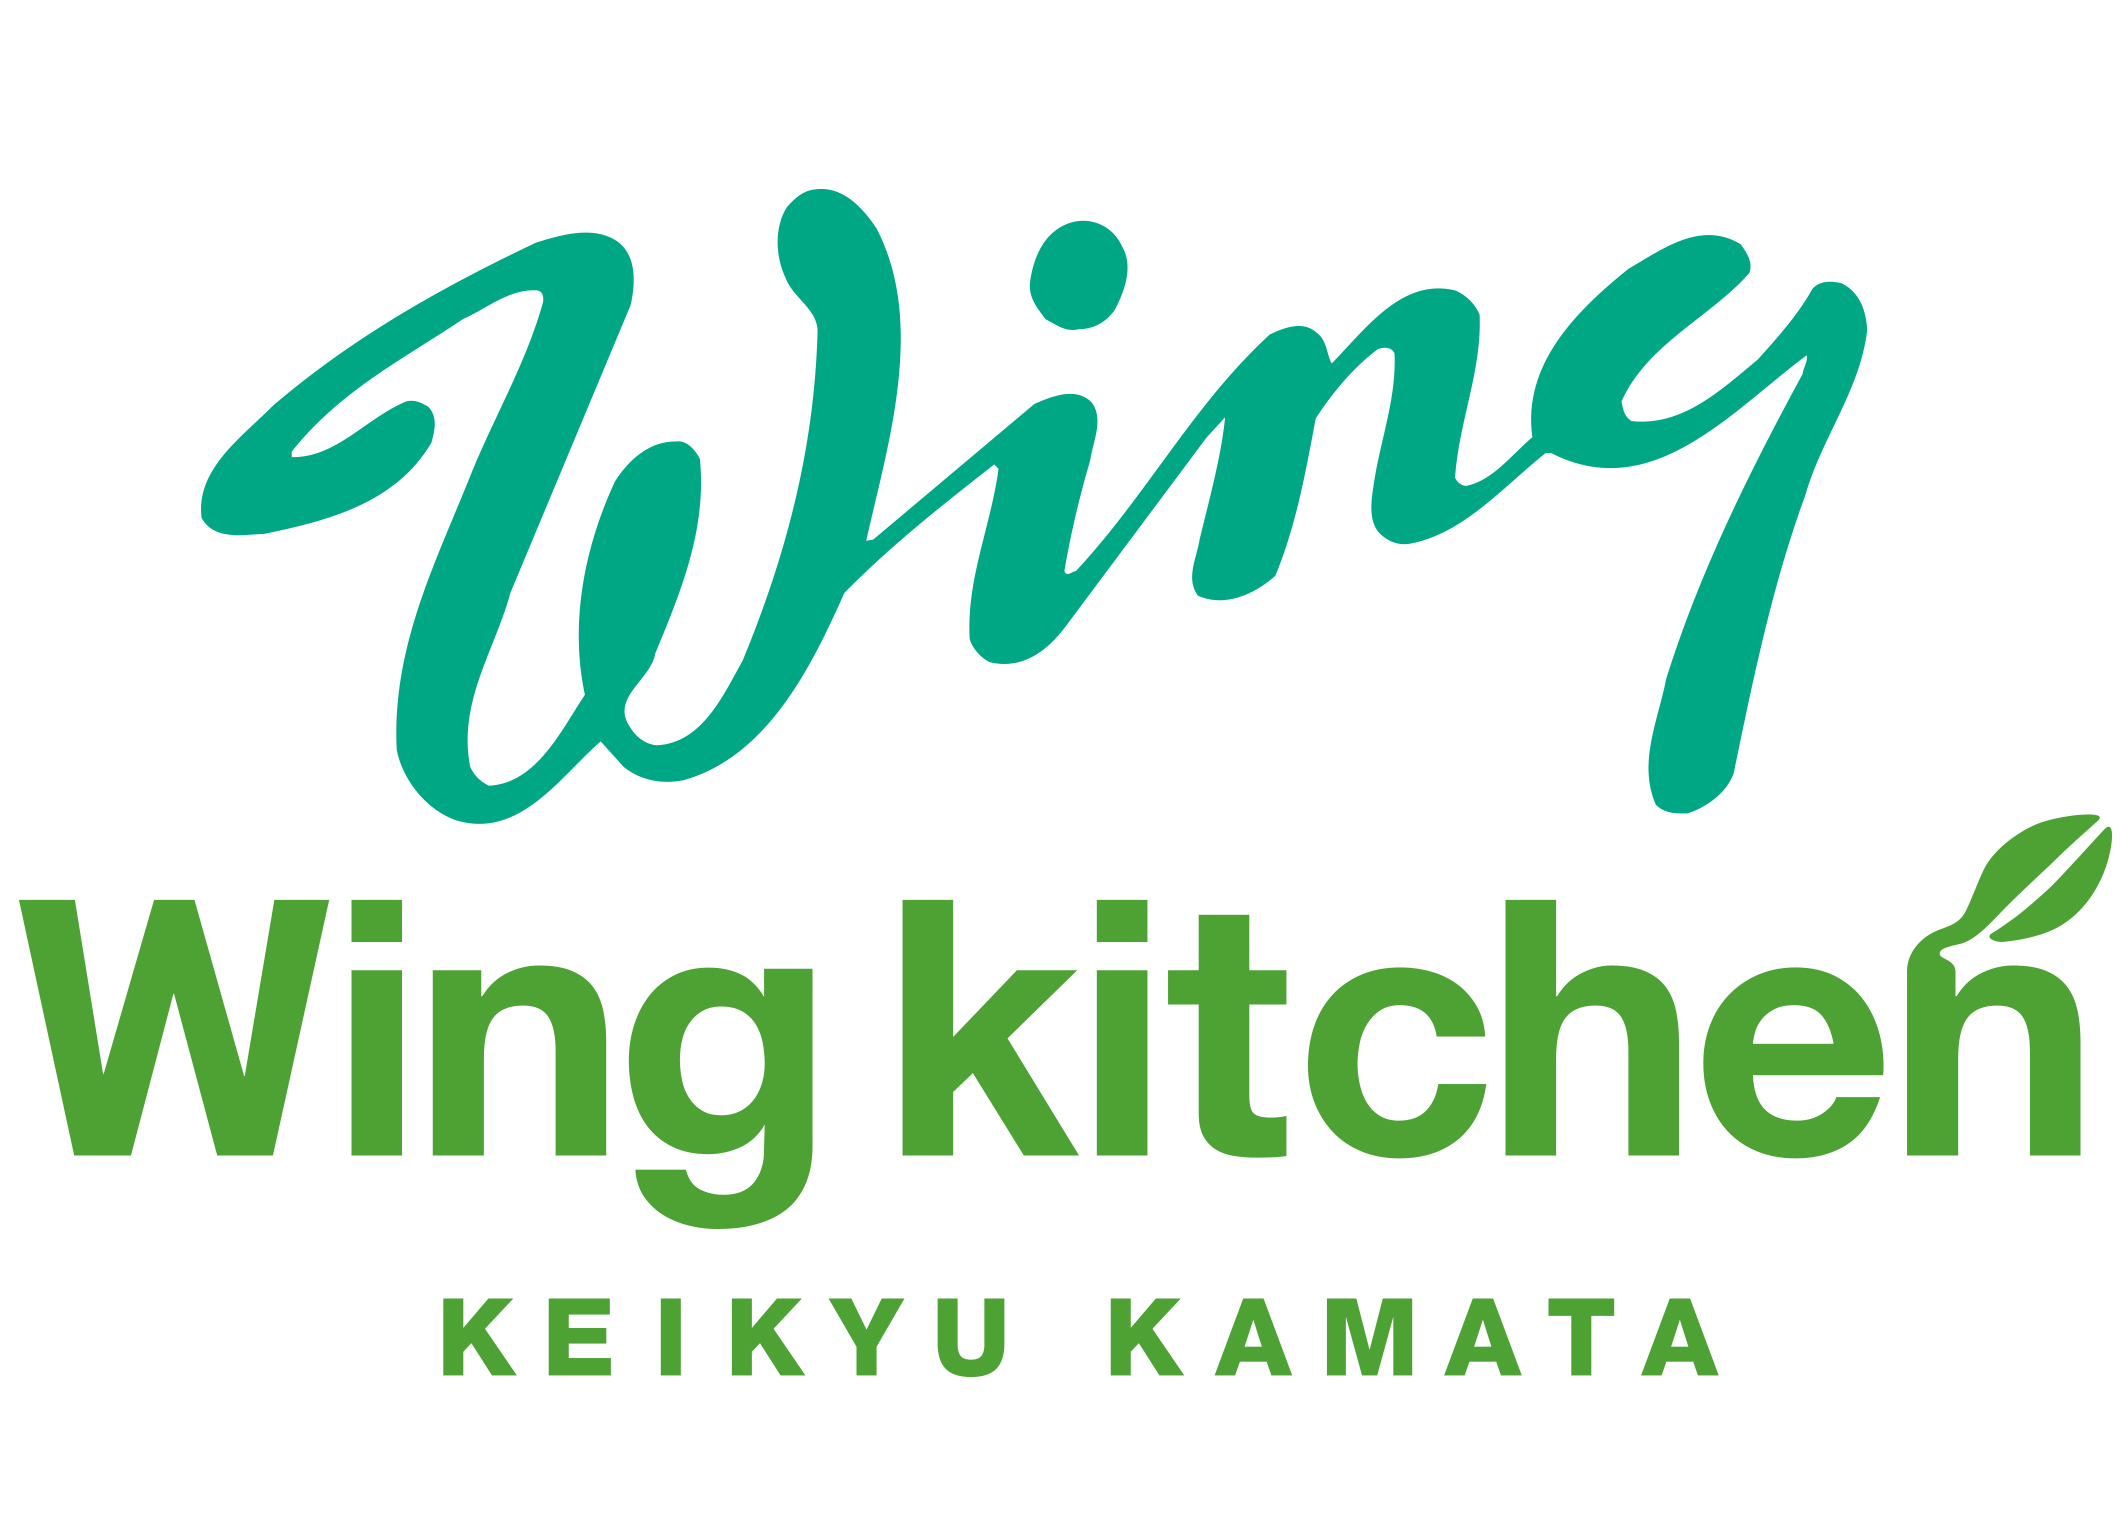 Keikyu Wing airport & kitchen